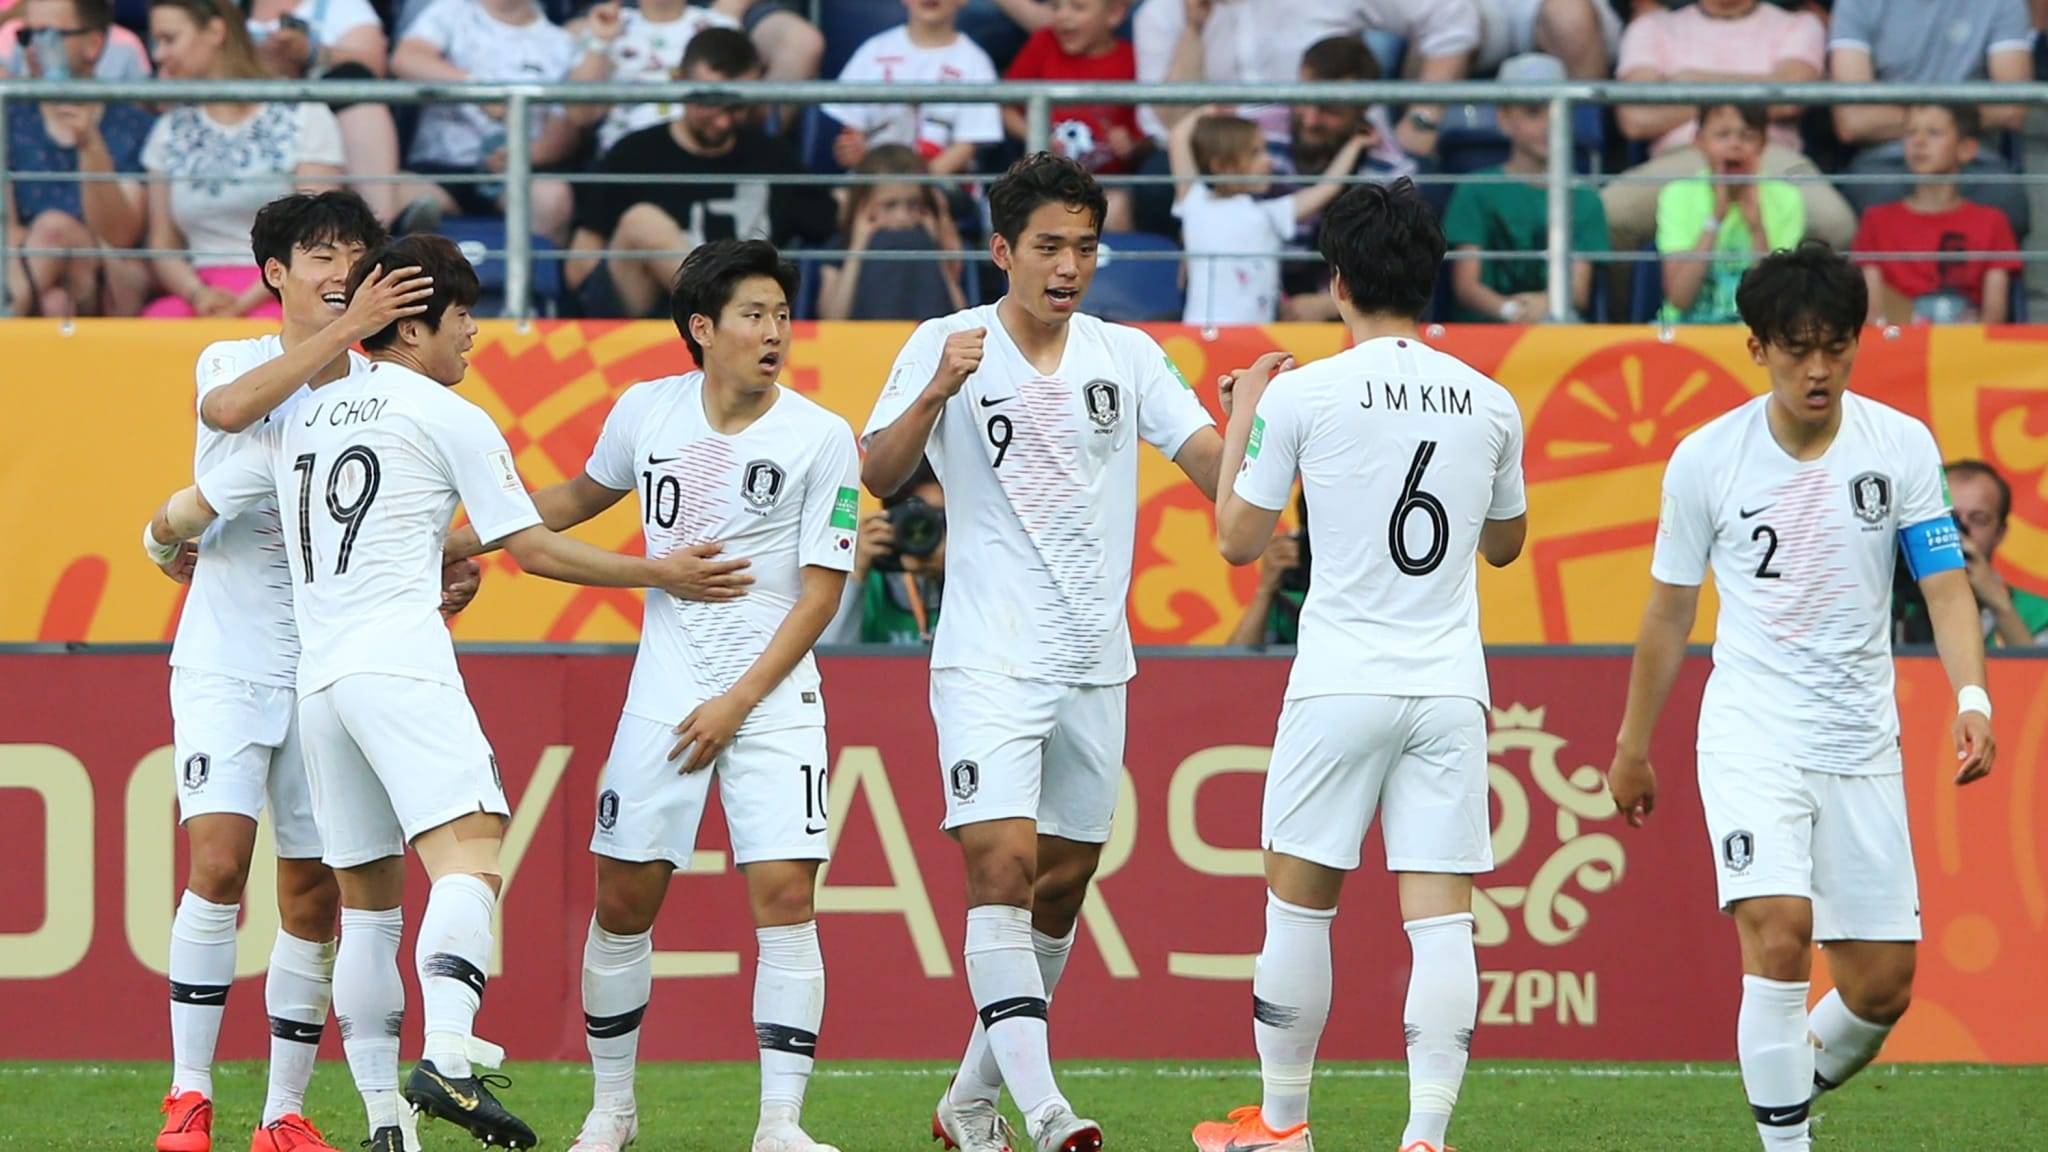 Korea Progress to U20 World Cup Quarter Finals